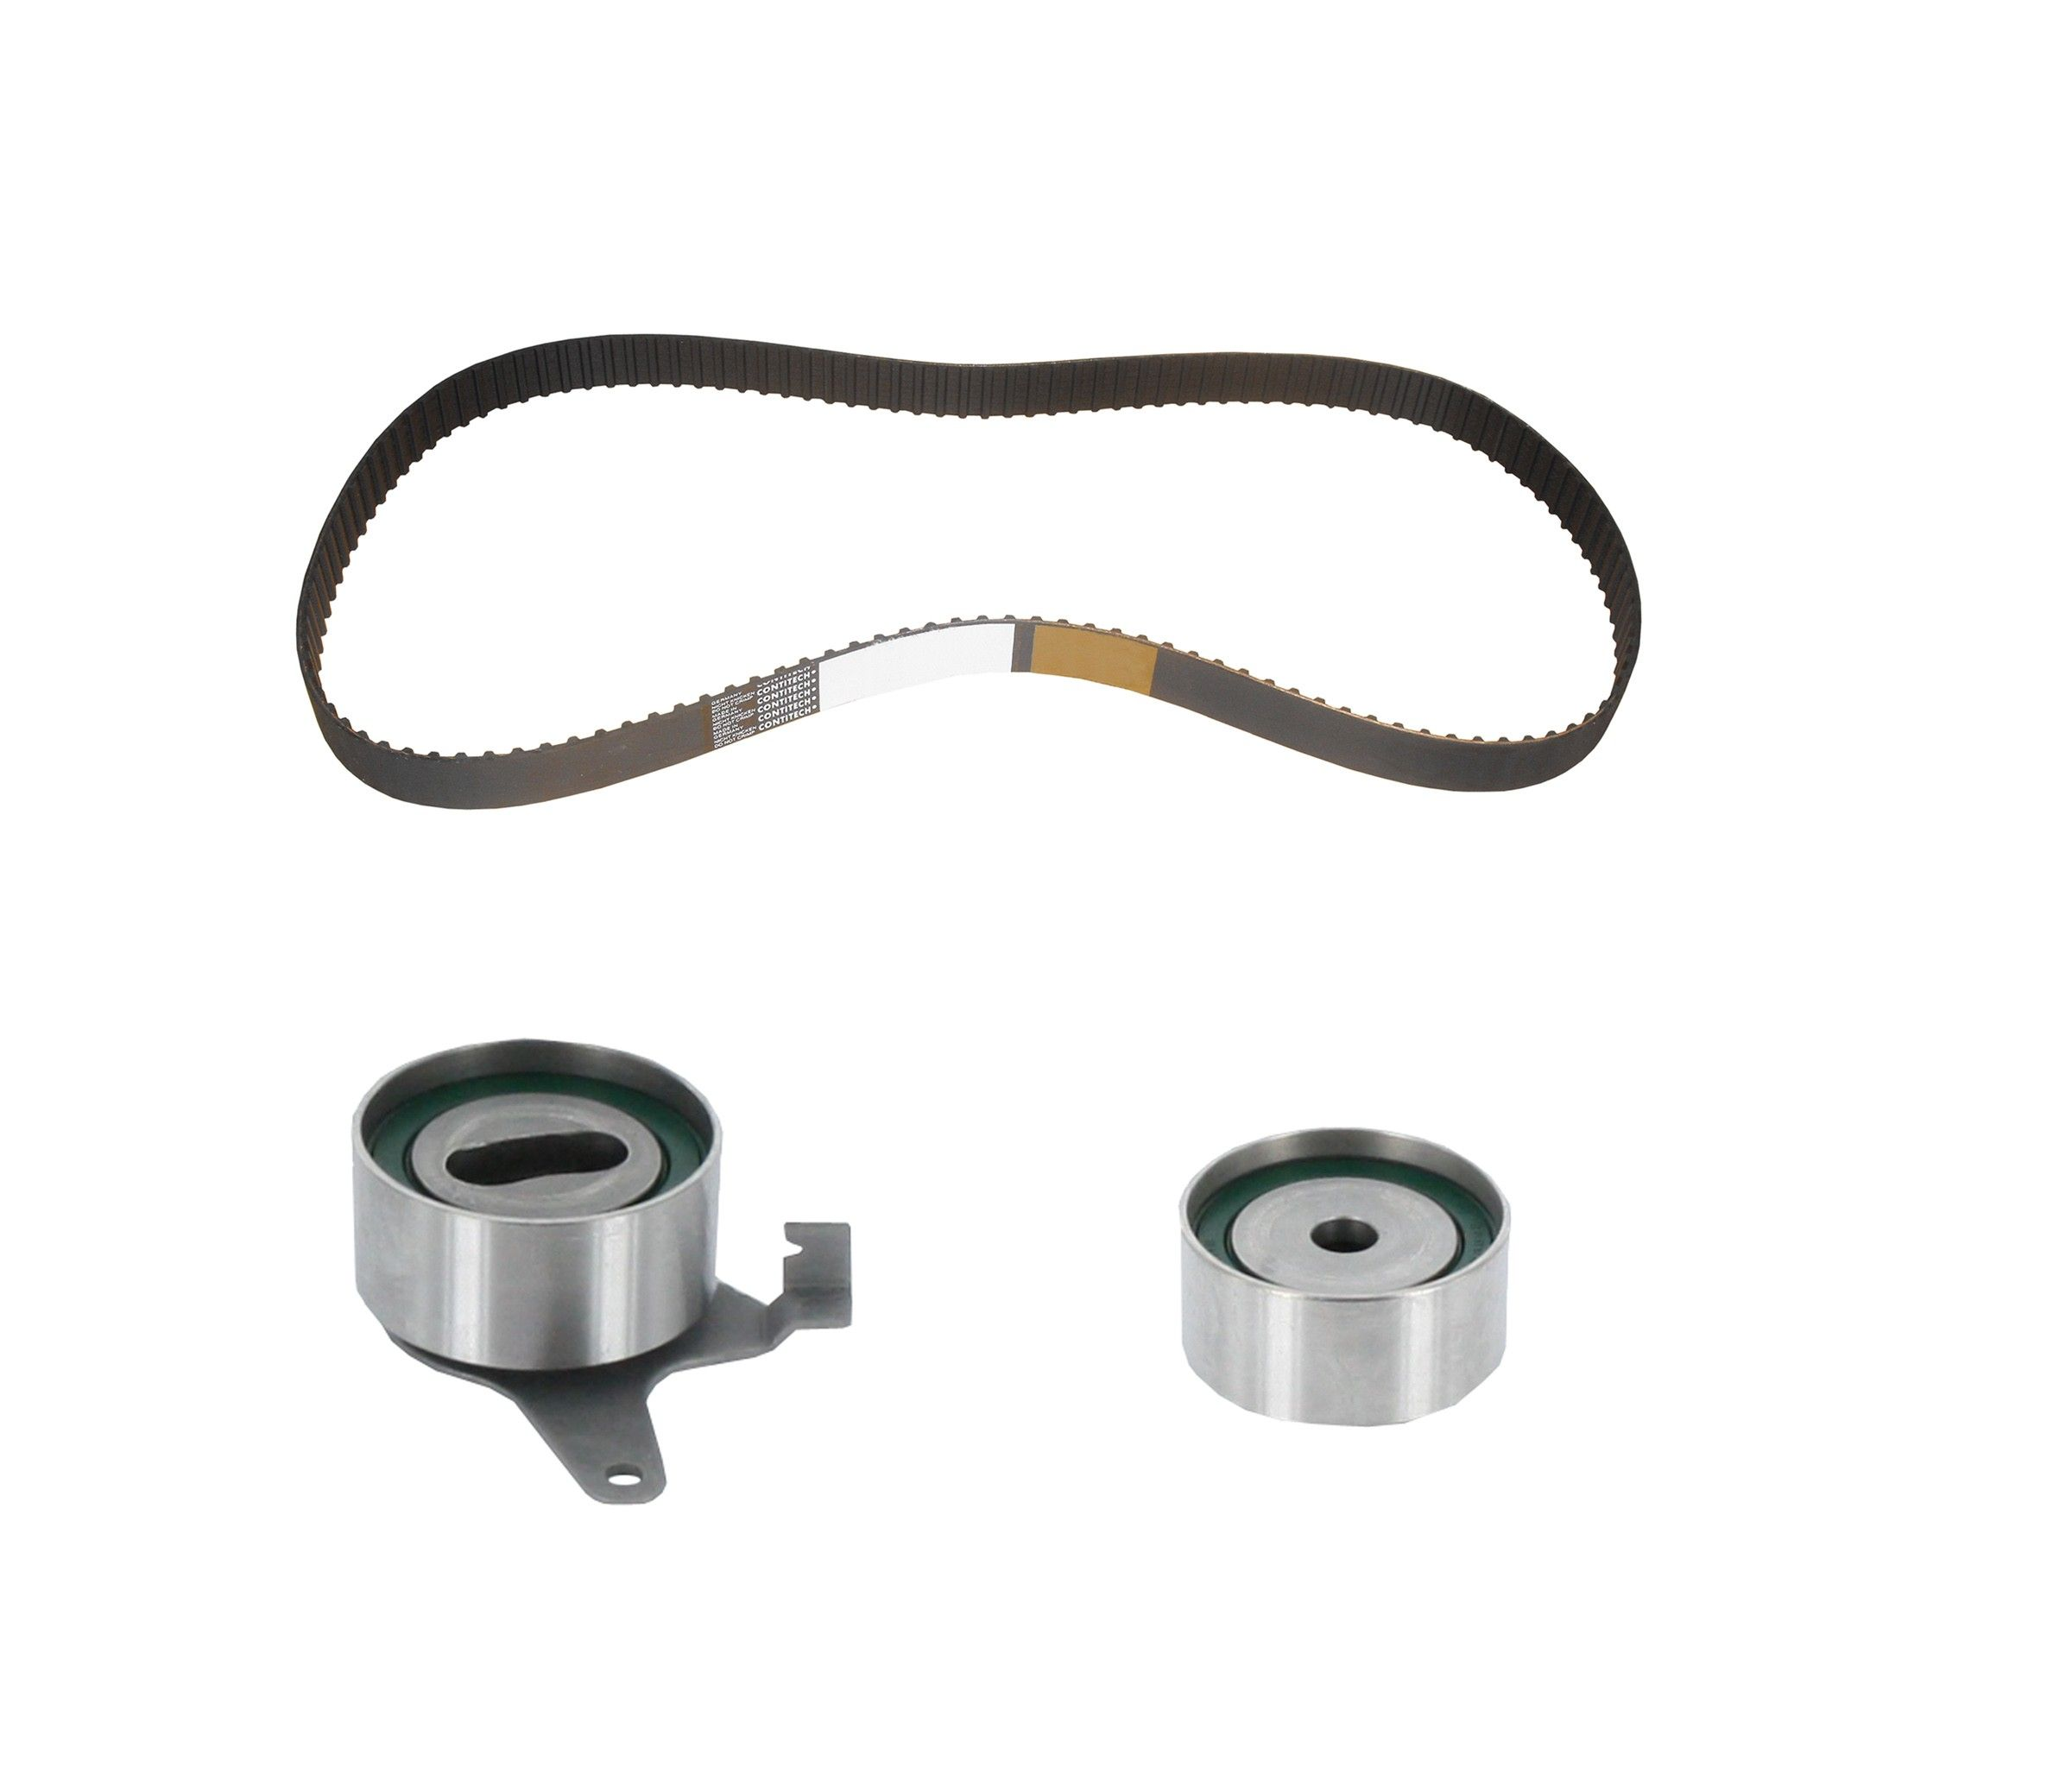 Engine Timing Belt Kit Replacement Crp Dayco Go Parts 1997 Ranger Kia Sephia 4 Cyl 18l Tb179k1 Interference Eng